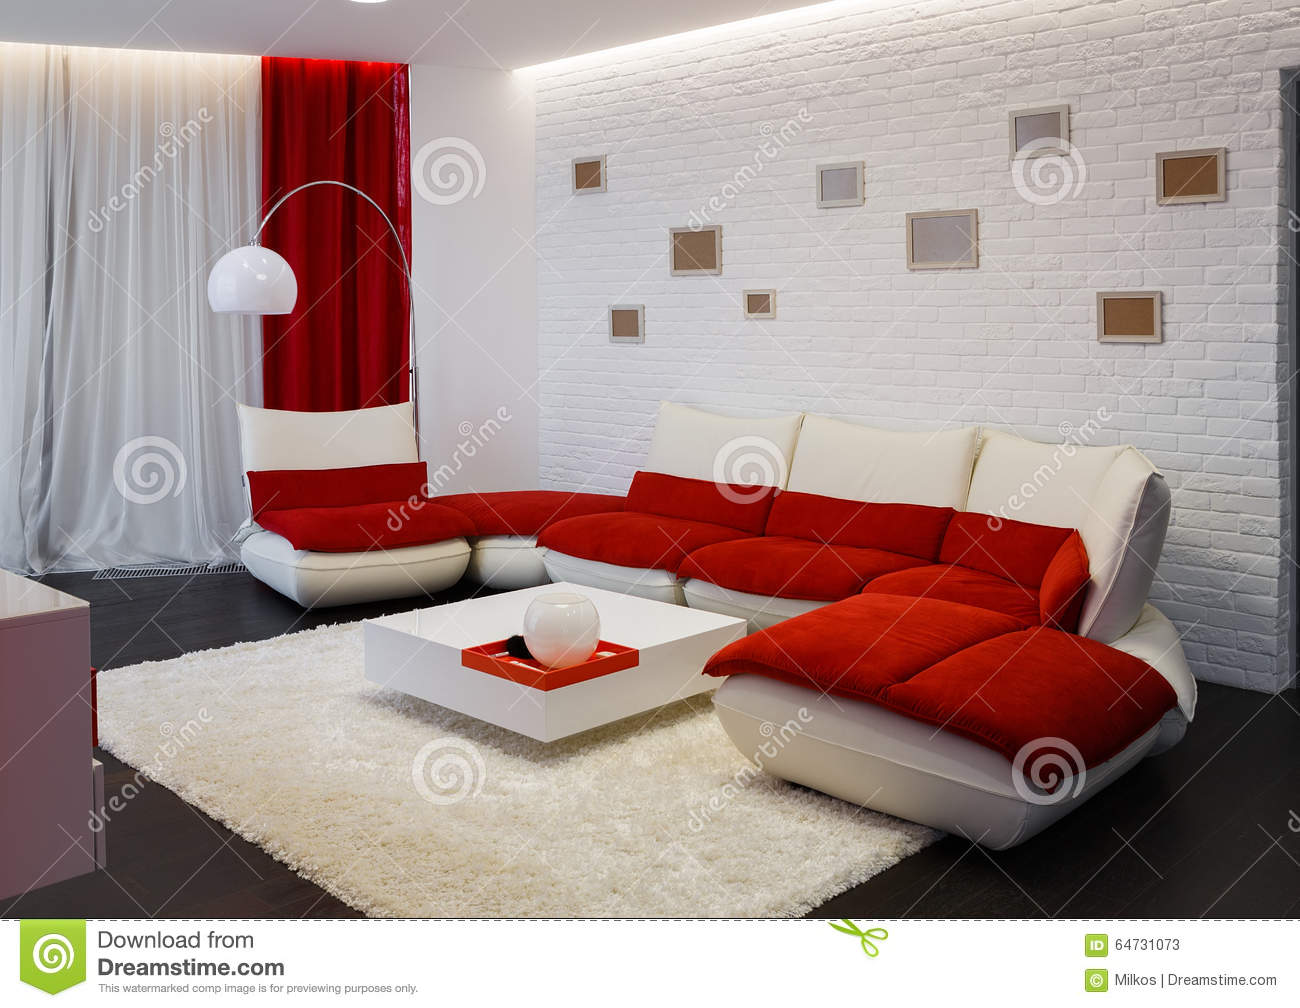 Modern Living Room Interior With Red Sofa Stock Photo